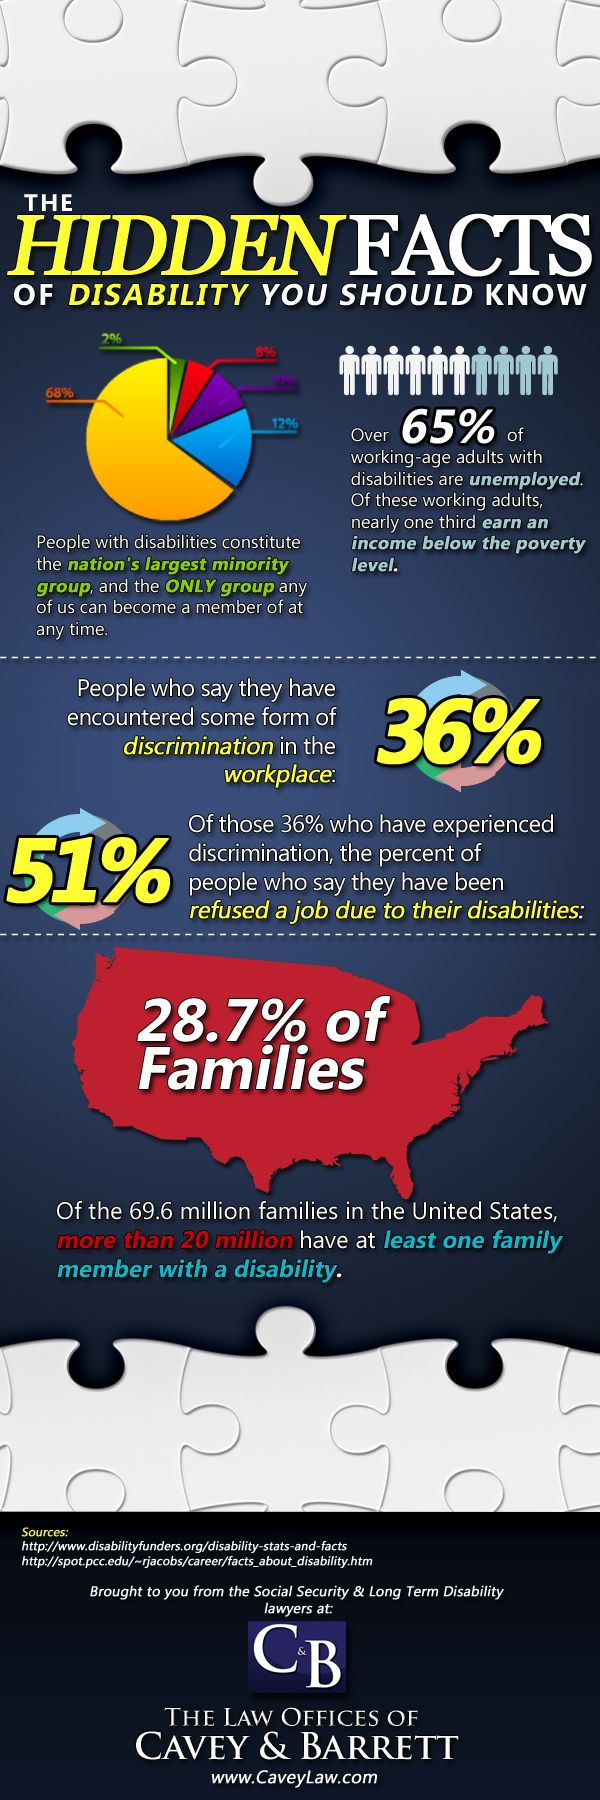 Facts About Disability